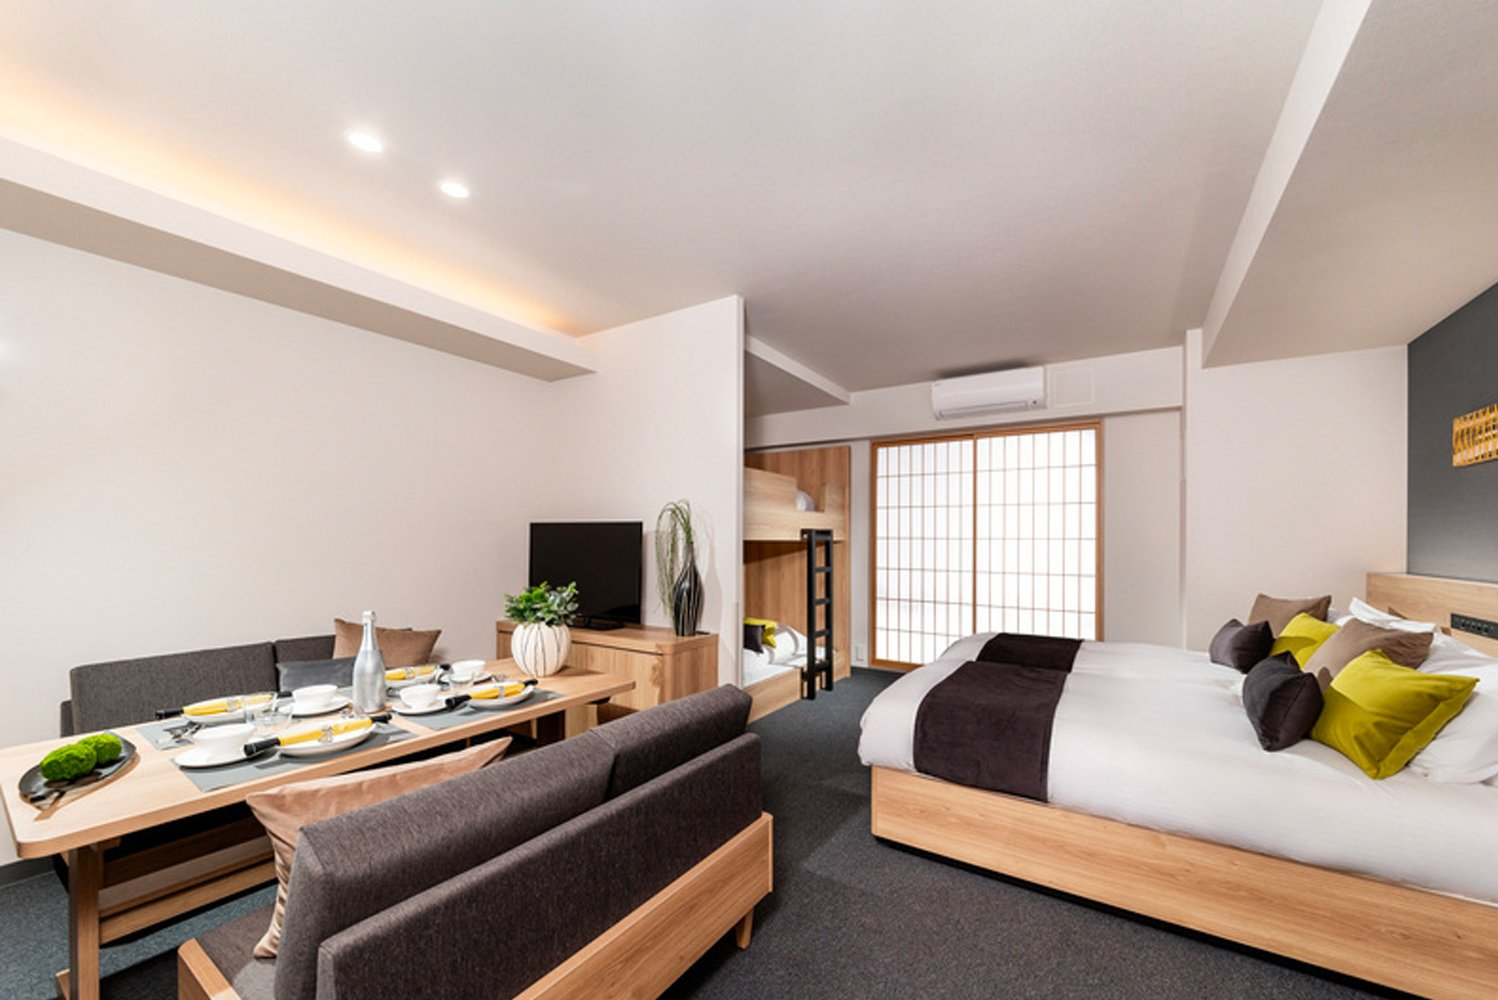 The design of guestrooms and the hotel entrance was supervised by NATSUMIKUMI, an architecture and interior designing company.